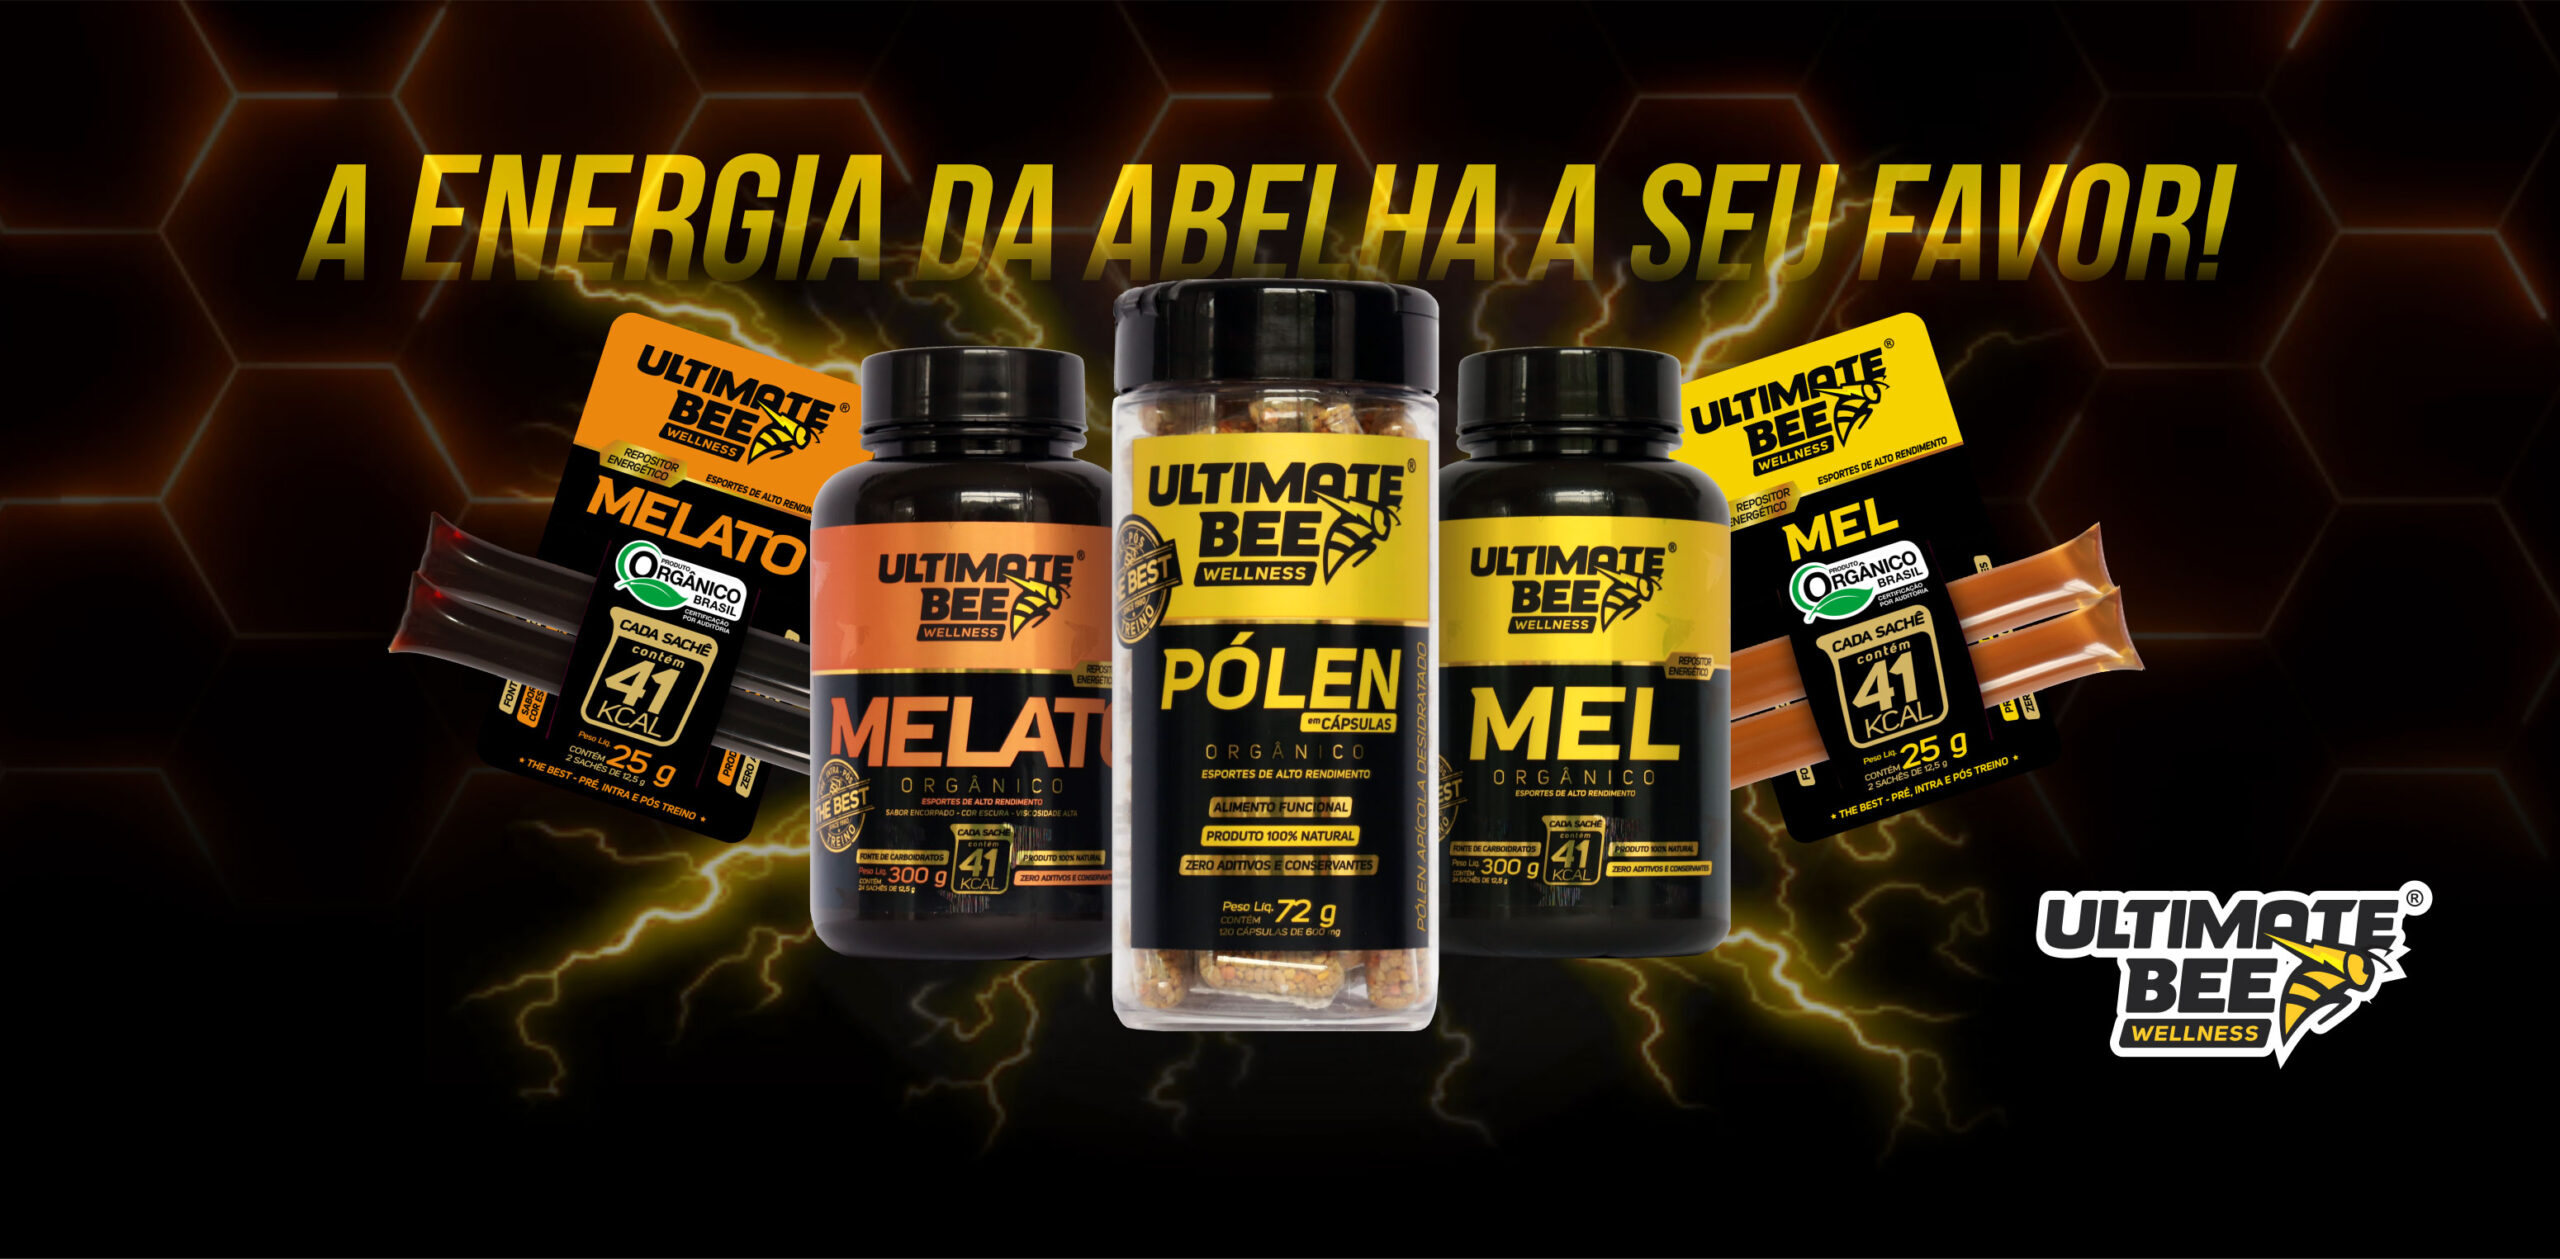 linha-fitness-natural-repositor-energetico-ultimate-bee-wellness-breyer-mel-melato-polen-full-banner